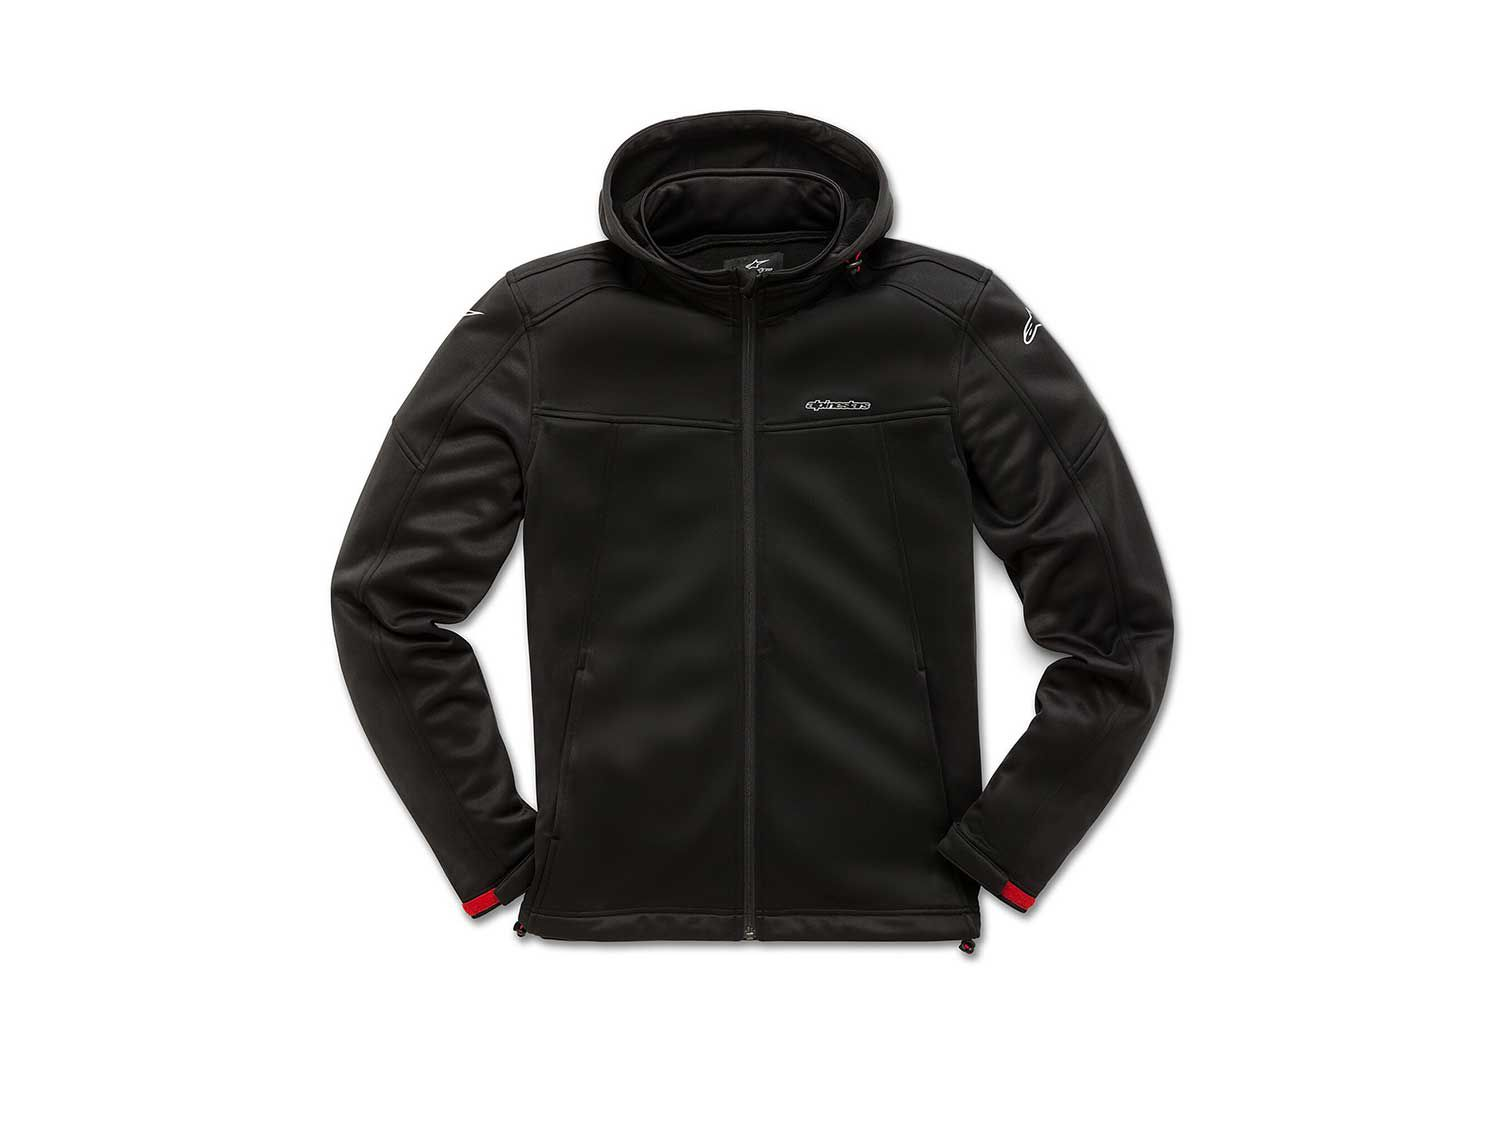 """The <a  href=""""https://www.amazon.com/Alpinestars-Stratified-Jackets-X-Large-Black/dp/B07GF53MH1/ref=as_li_ss_tl?ie=UTF8&linkCode=sl1&tag=mcy01-20&linkId=016098b3a1411c27877444fee74fea6a&language=en_US"""">Stratified Jacket</a> is a bonded micro-fleece jacket with a track-style collar and removable hood. There's a reverse coil zipper at the front, bungee adjusters at the hood and hem, along with Velcro adjustment tabs at the cuffs."""